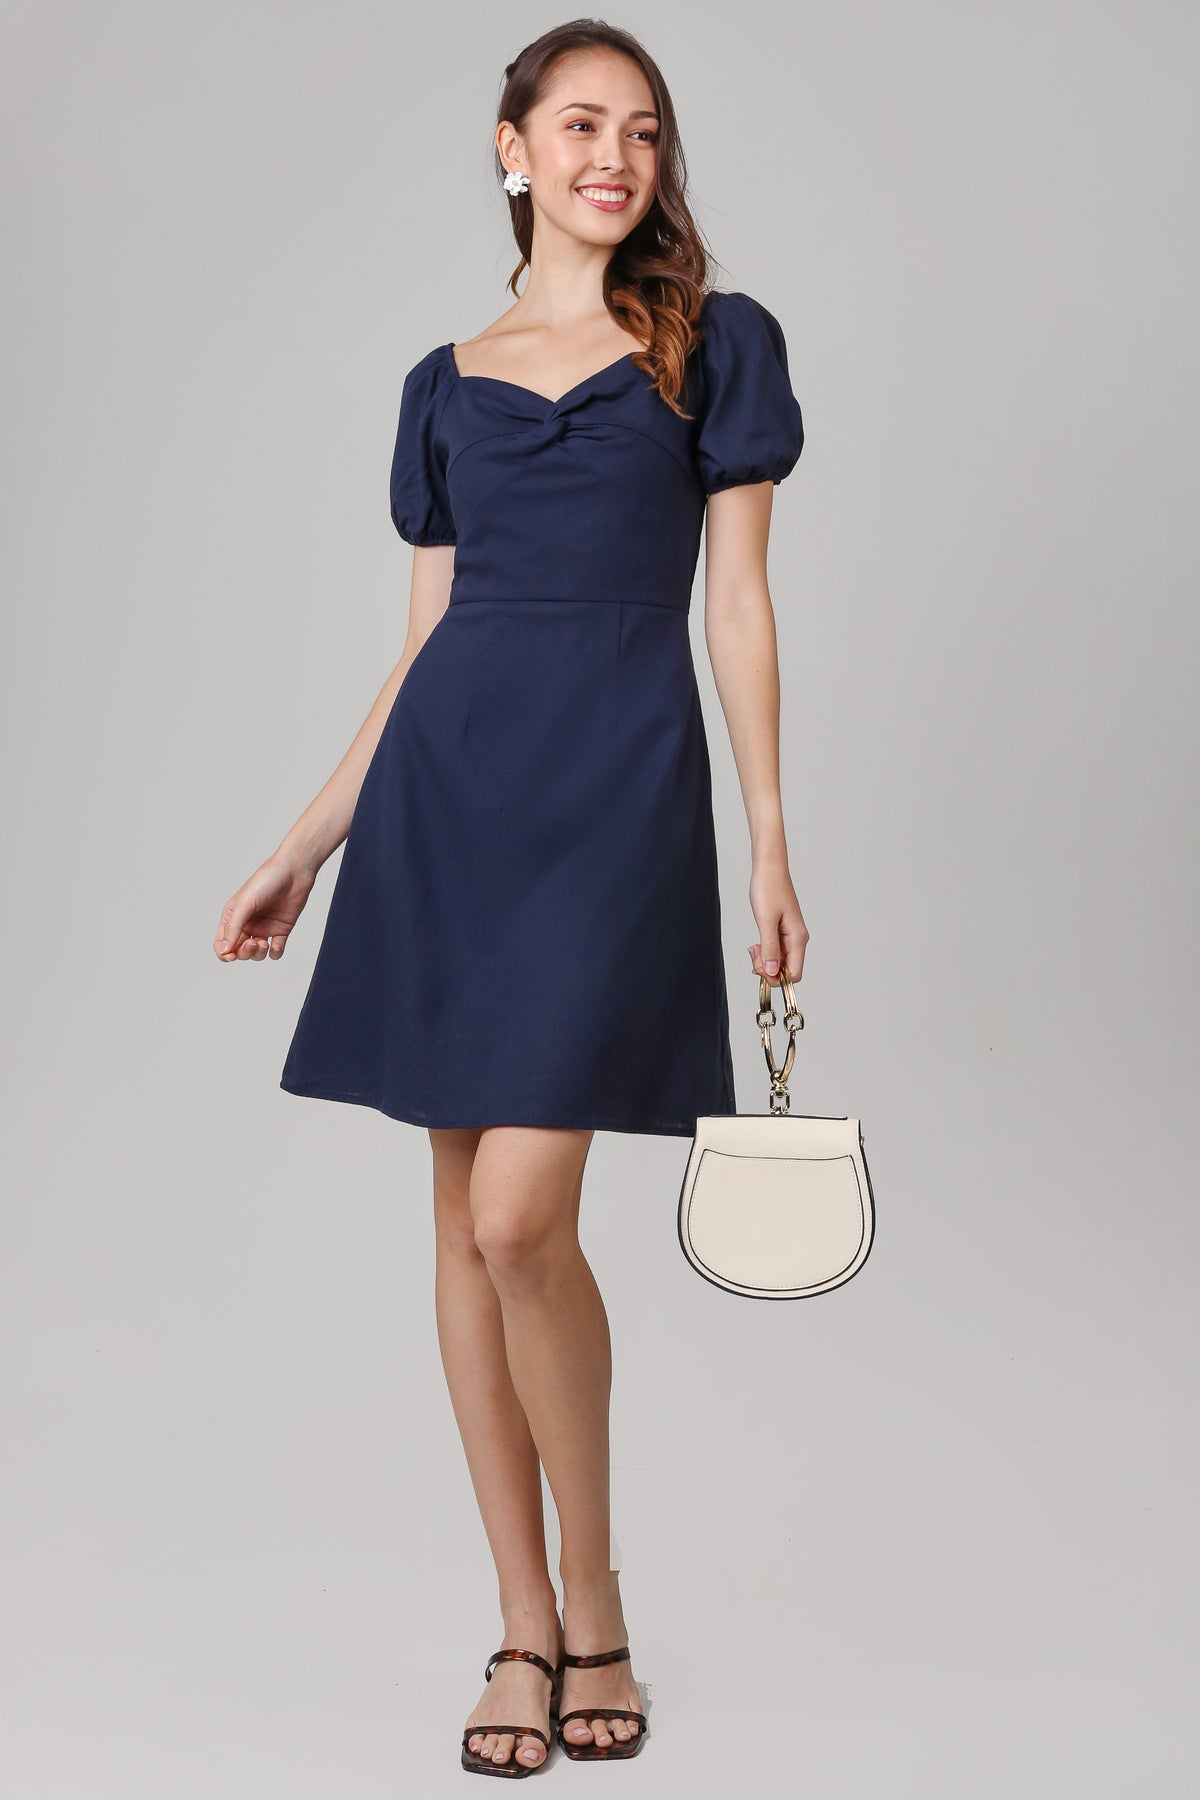 Lilith Puffy Sleeve Dress in Navy